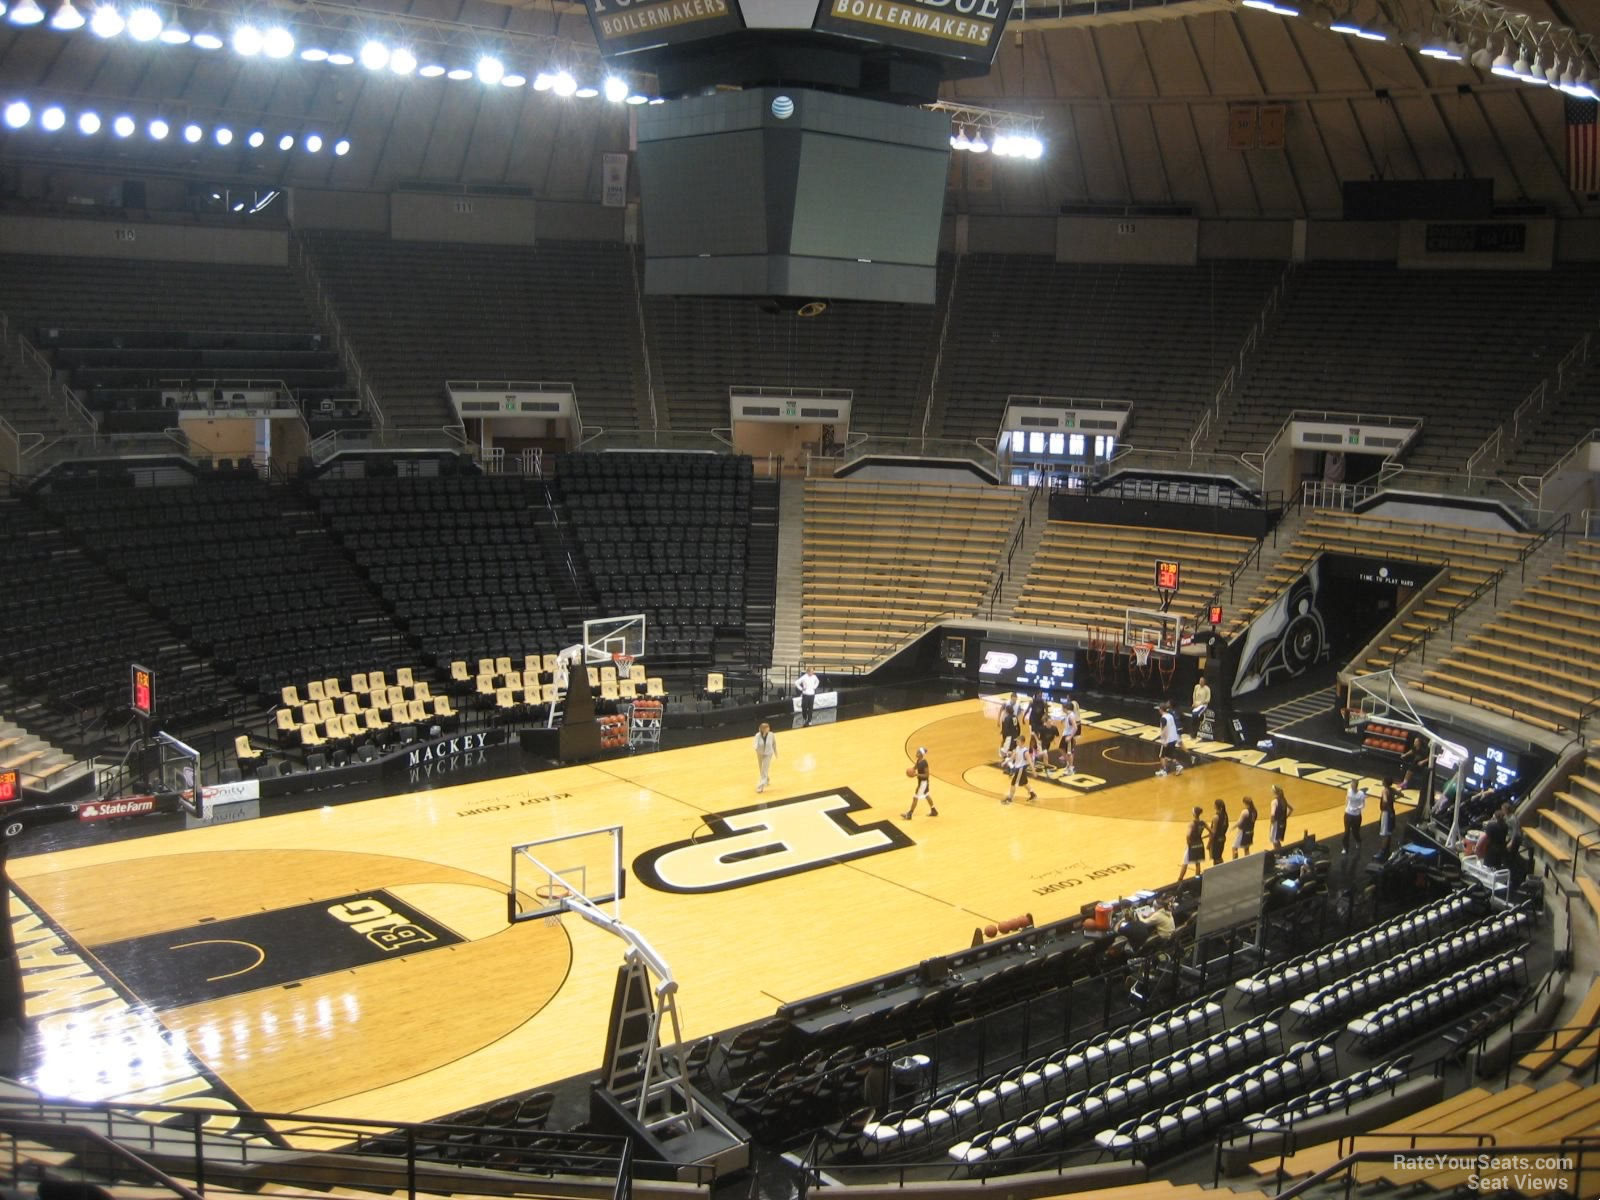 Seat View for Mackey Arena Section 104, Row 10